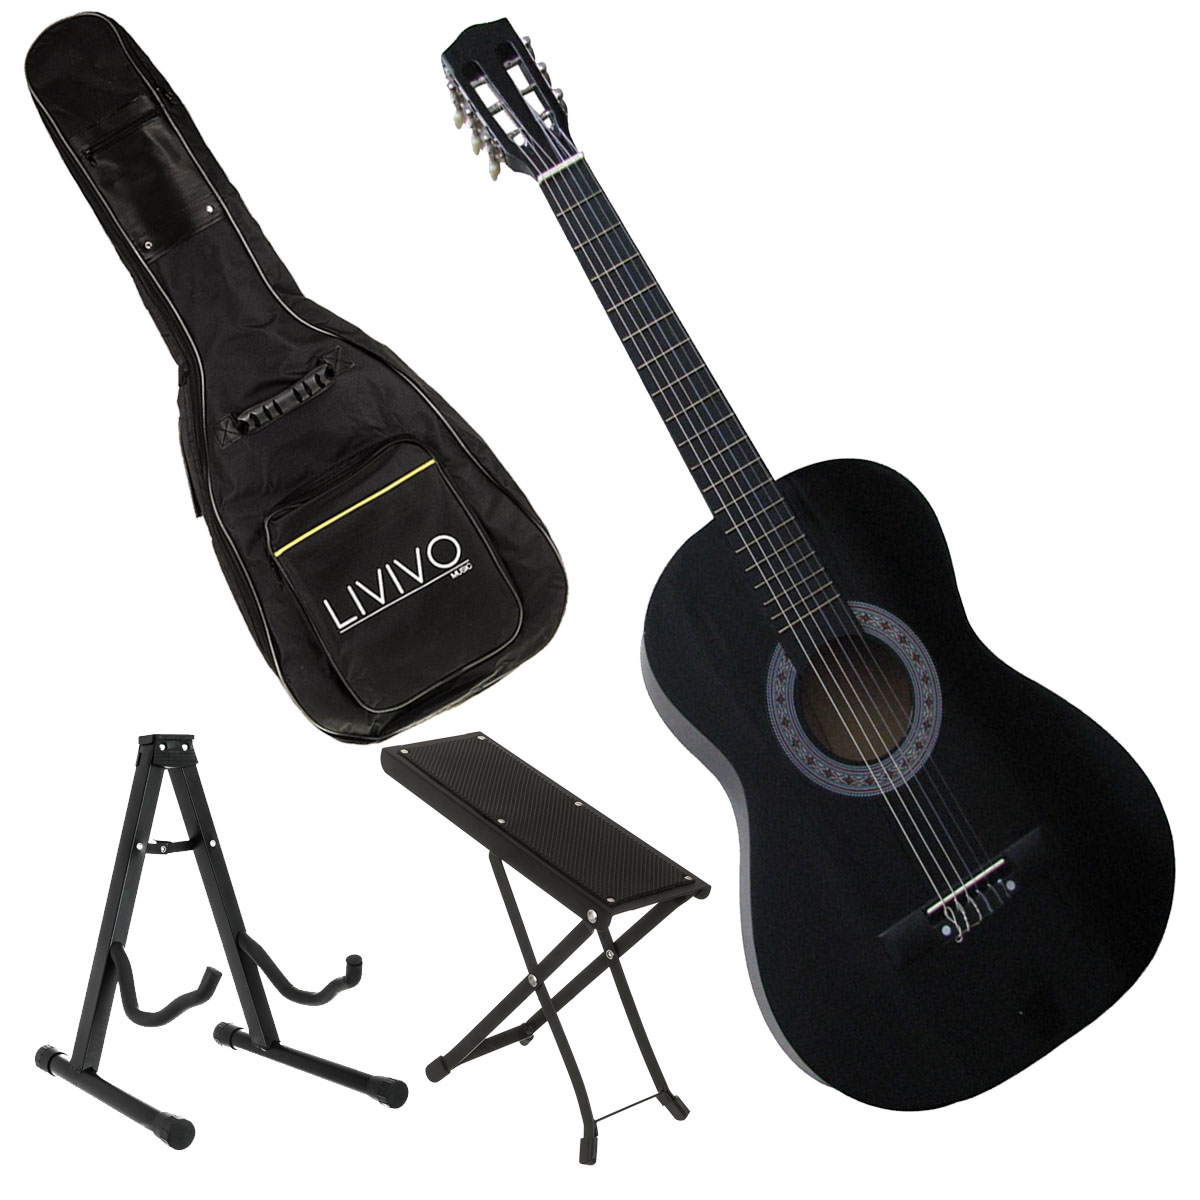 4in1 3 4 size 36 acoustic 6 nylon strings guitar music stand foot stool bag ebay. Black Bedroom Furniture Sets. Home Design Ideas